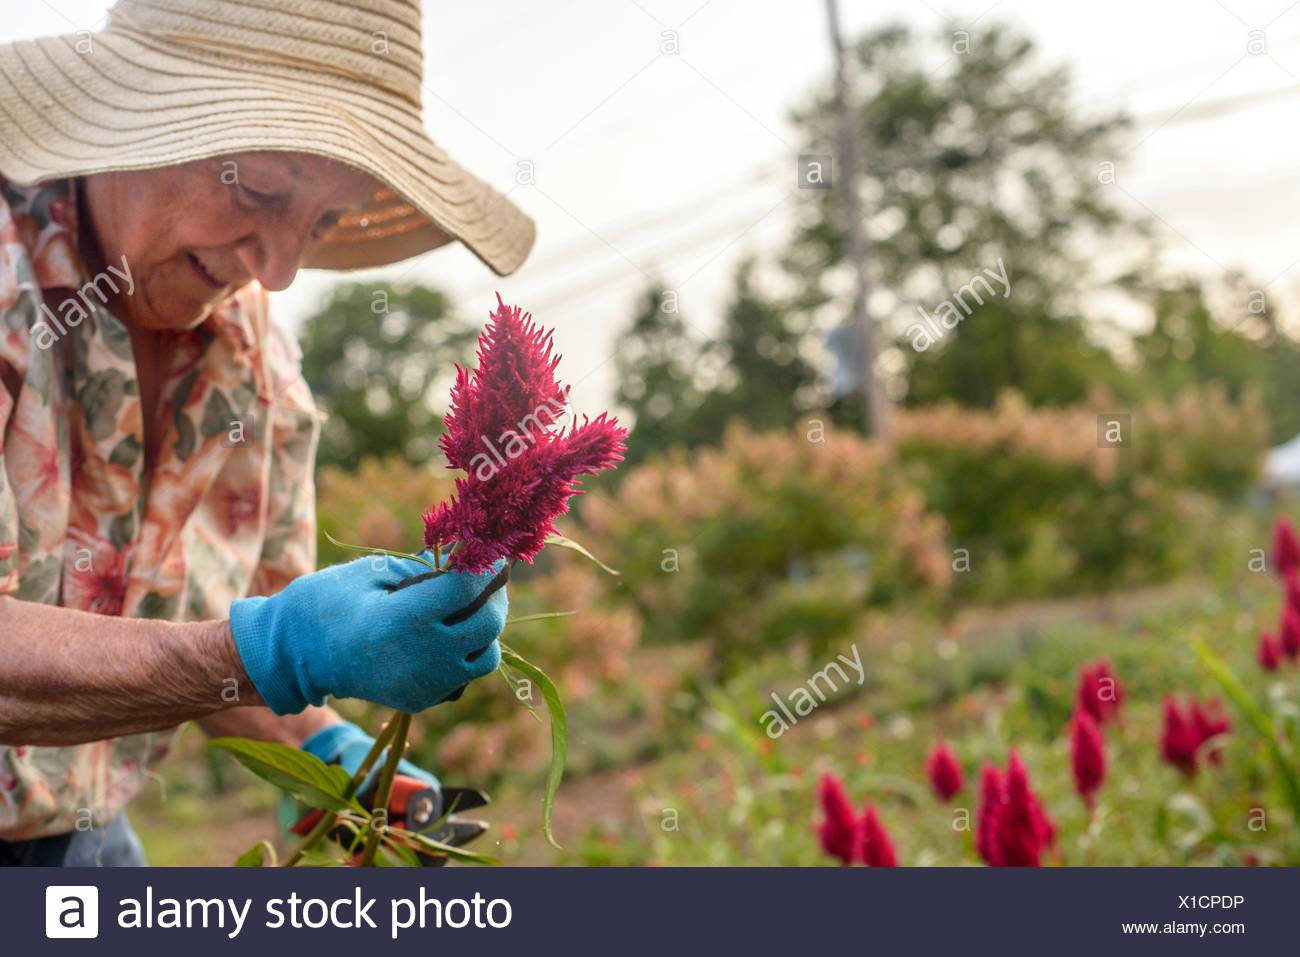 Senior woman harvesting and trimming flowers on farm - Stock Image